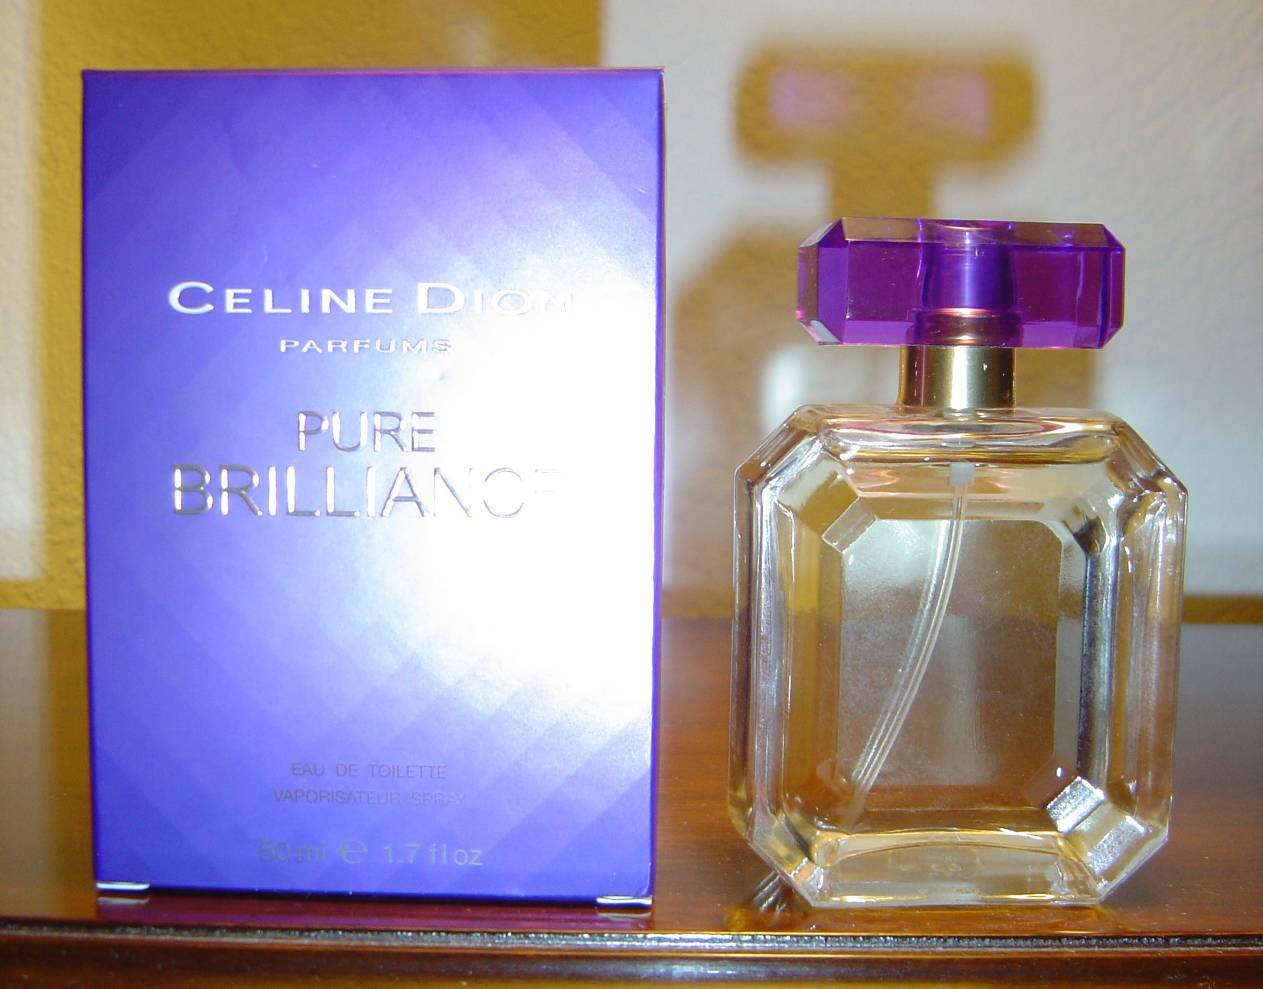 Celine Dion's Pure Brilliance Eau de Toilette Spray.jpeg